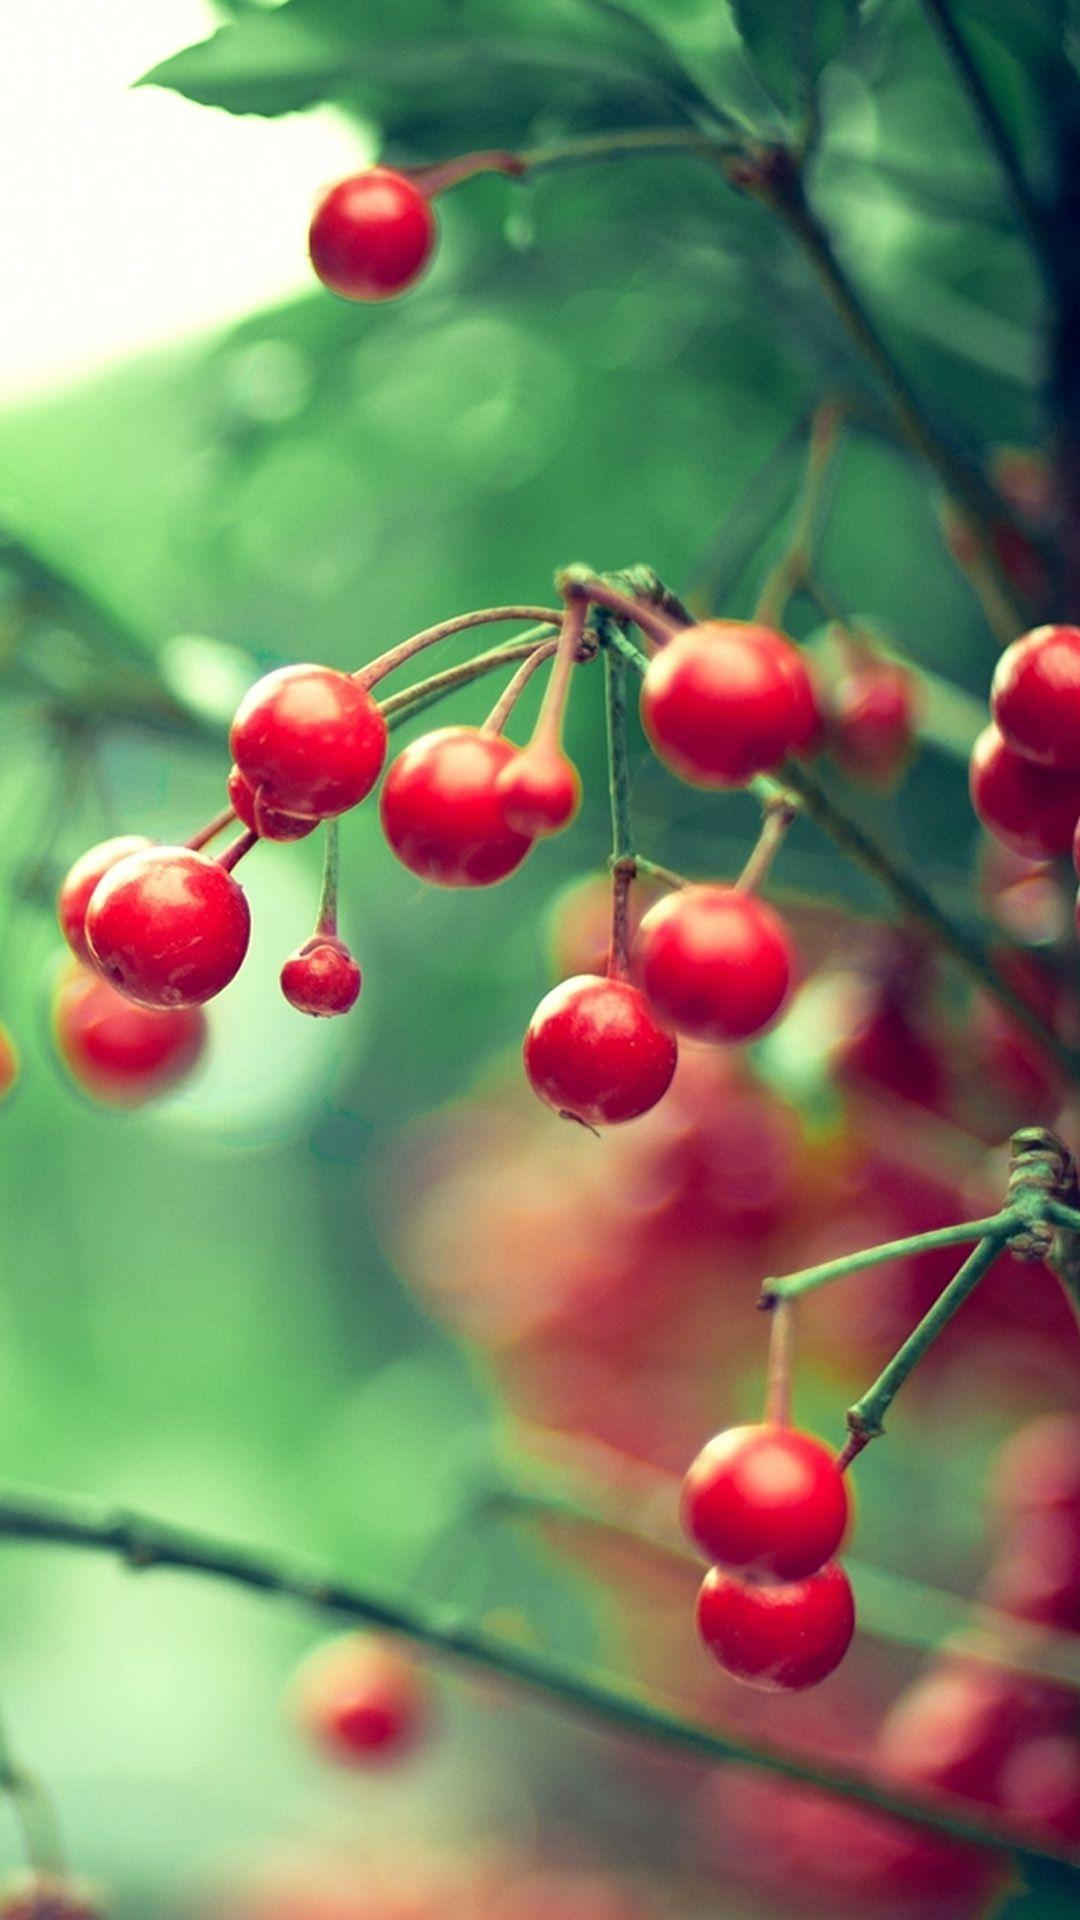 Nature Samsung Galaxy S5 Cherry Smartphone Wallpapers HD ⋆ GetPhotos